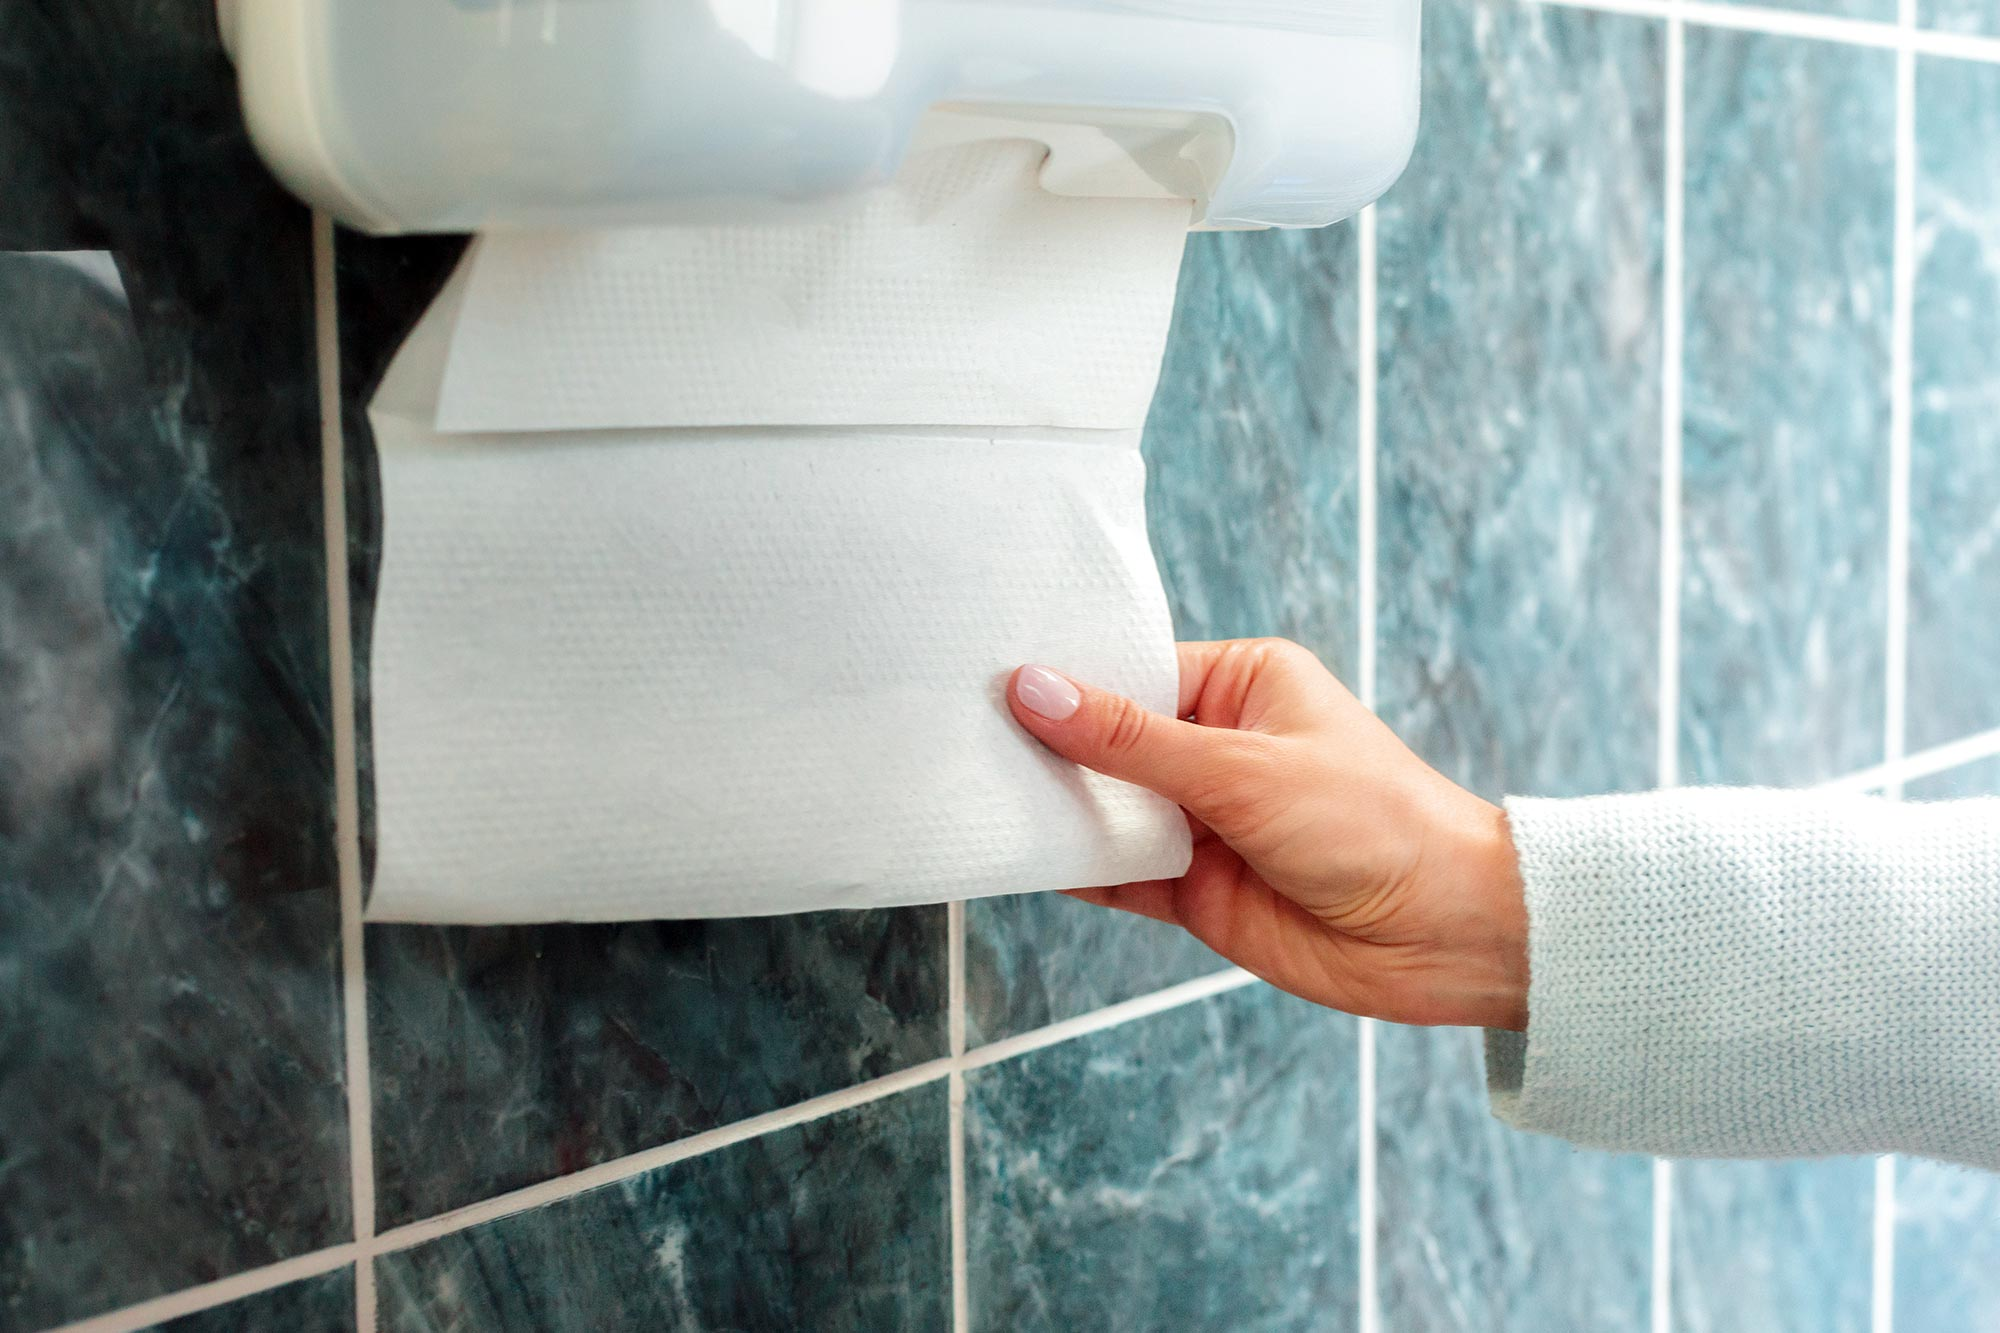 Paper Towels Much More Effective At Removing Viruses Than